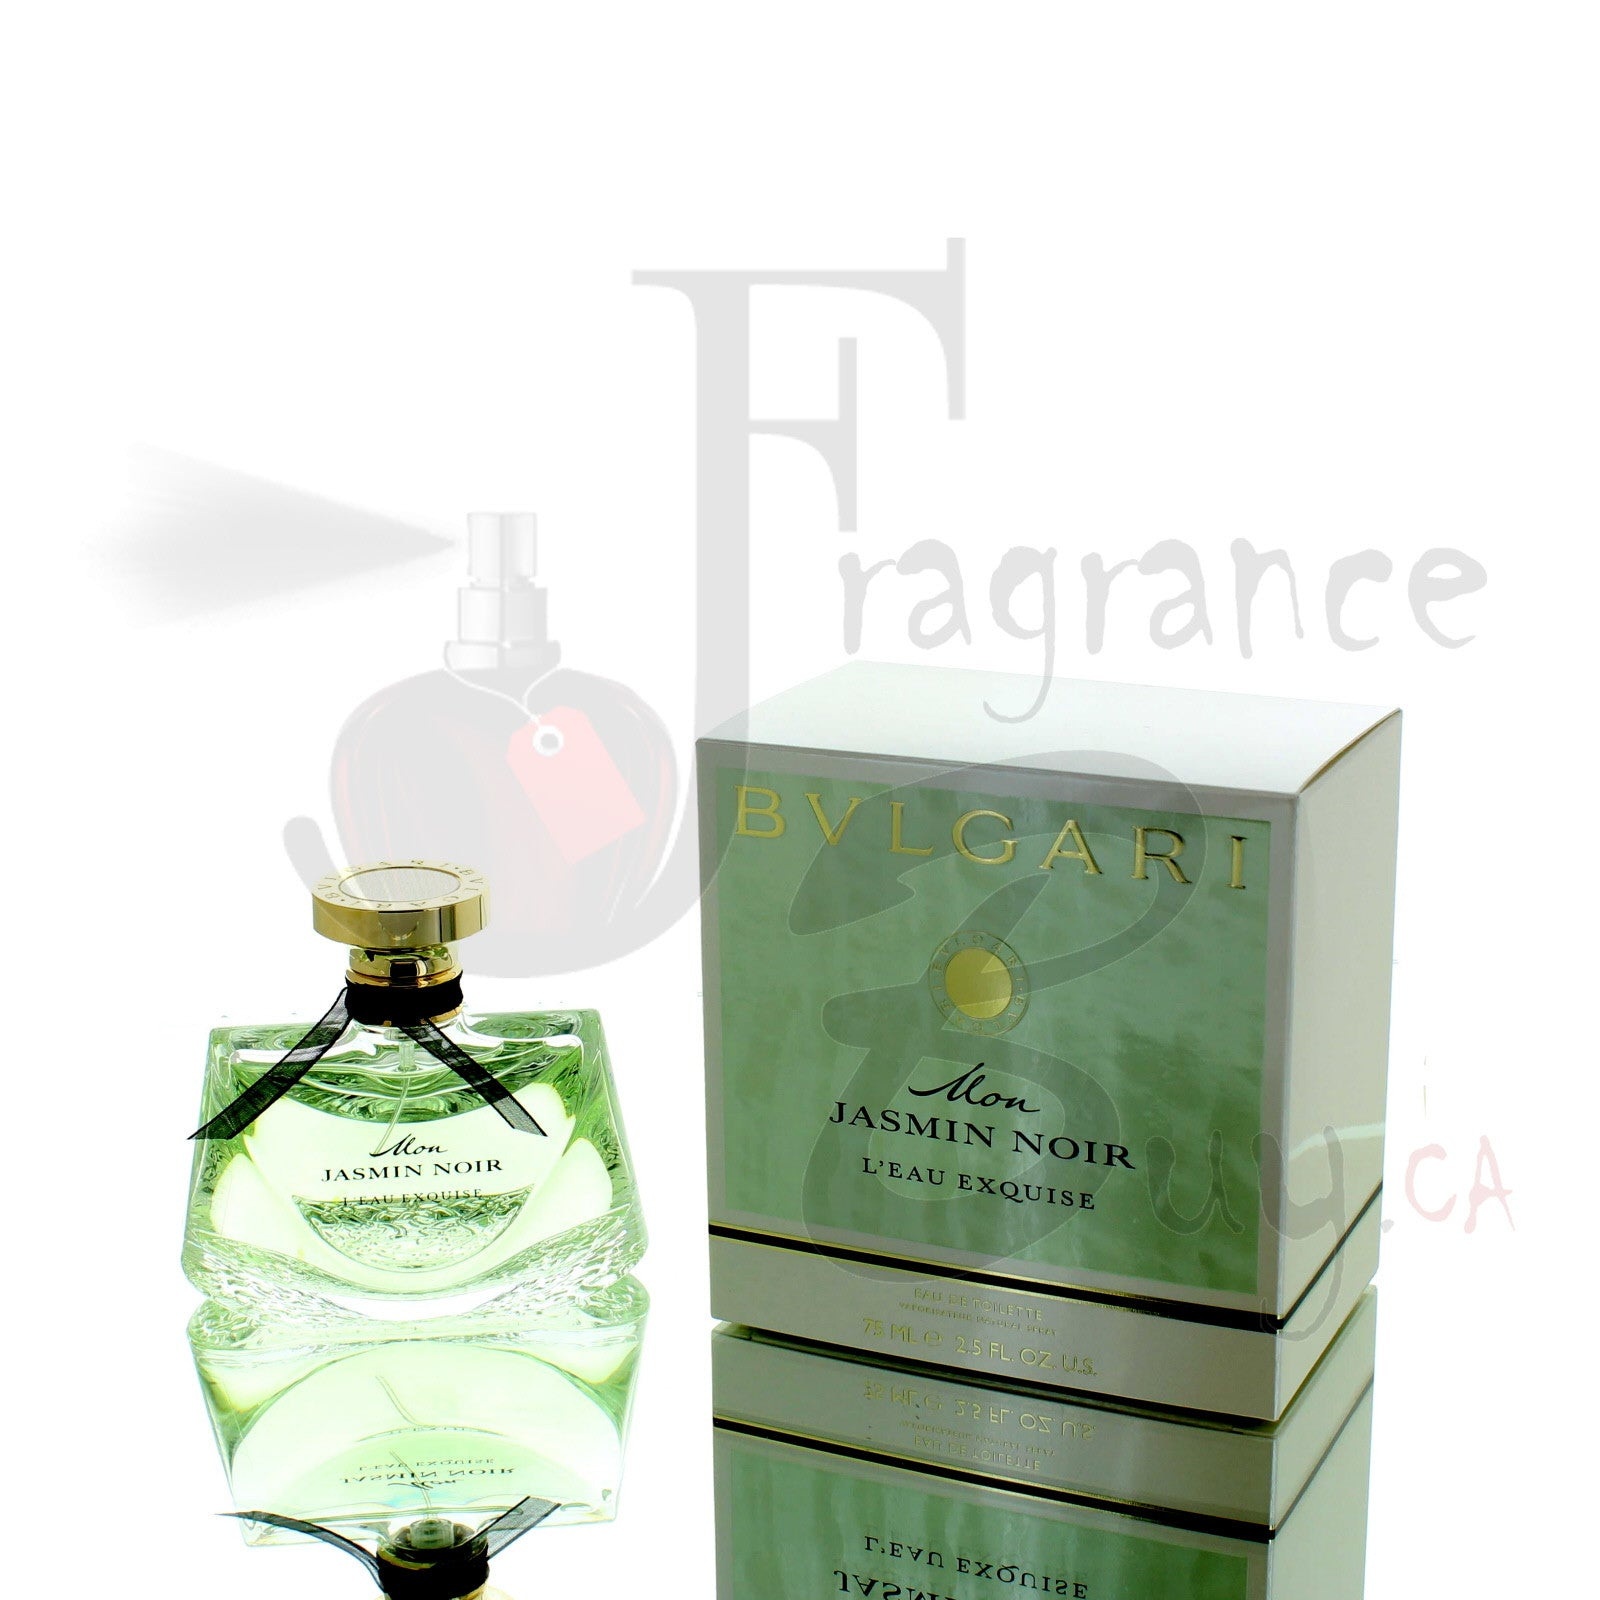 Bvlgari Mon Jasmin L'eau Exquise For Woman